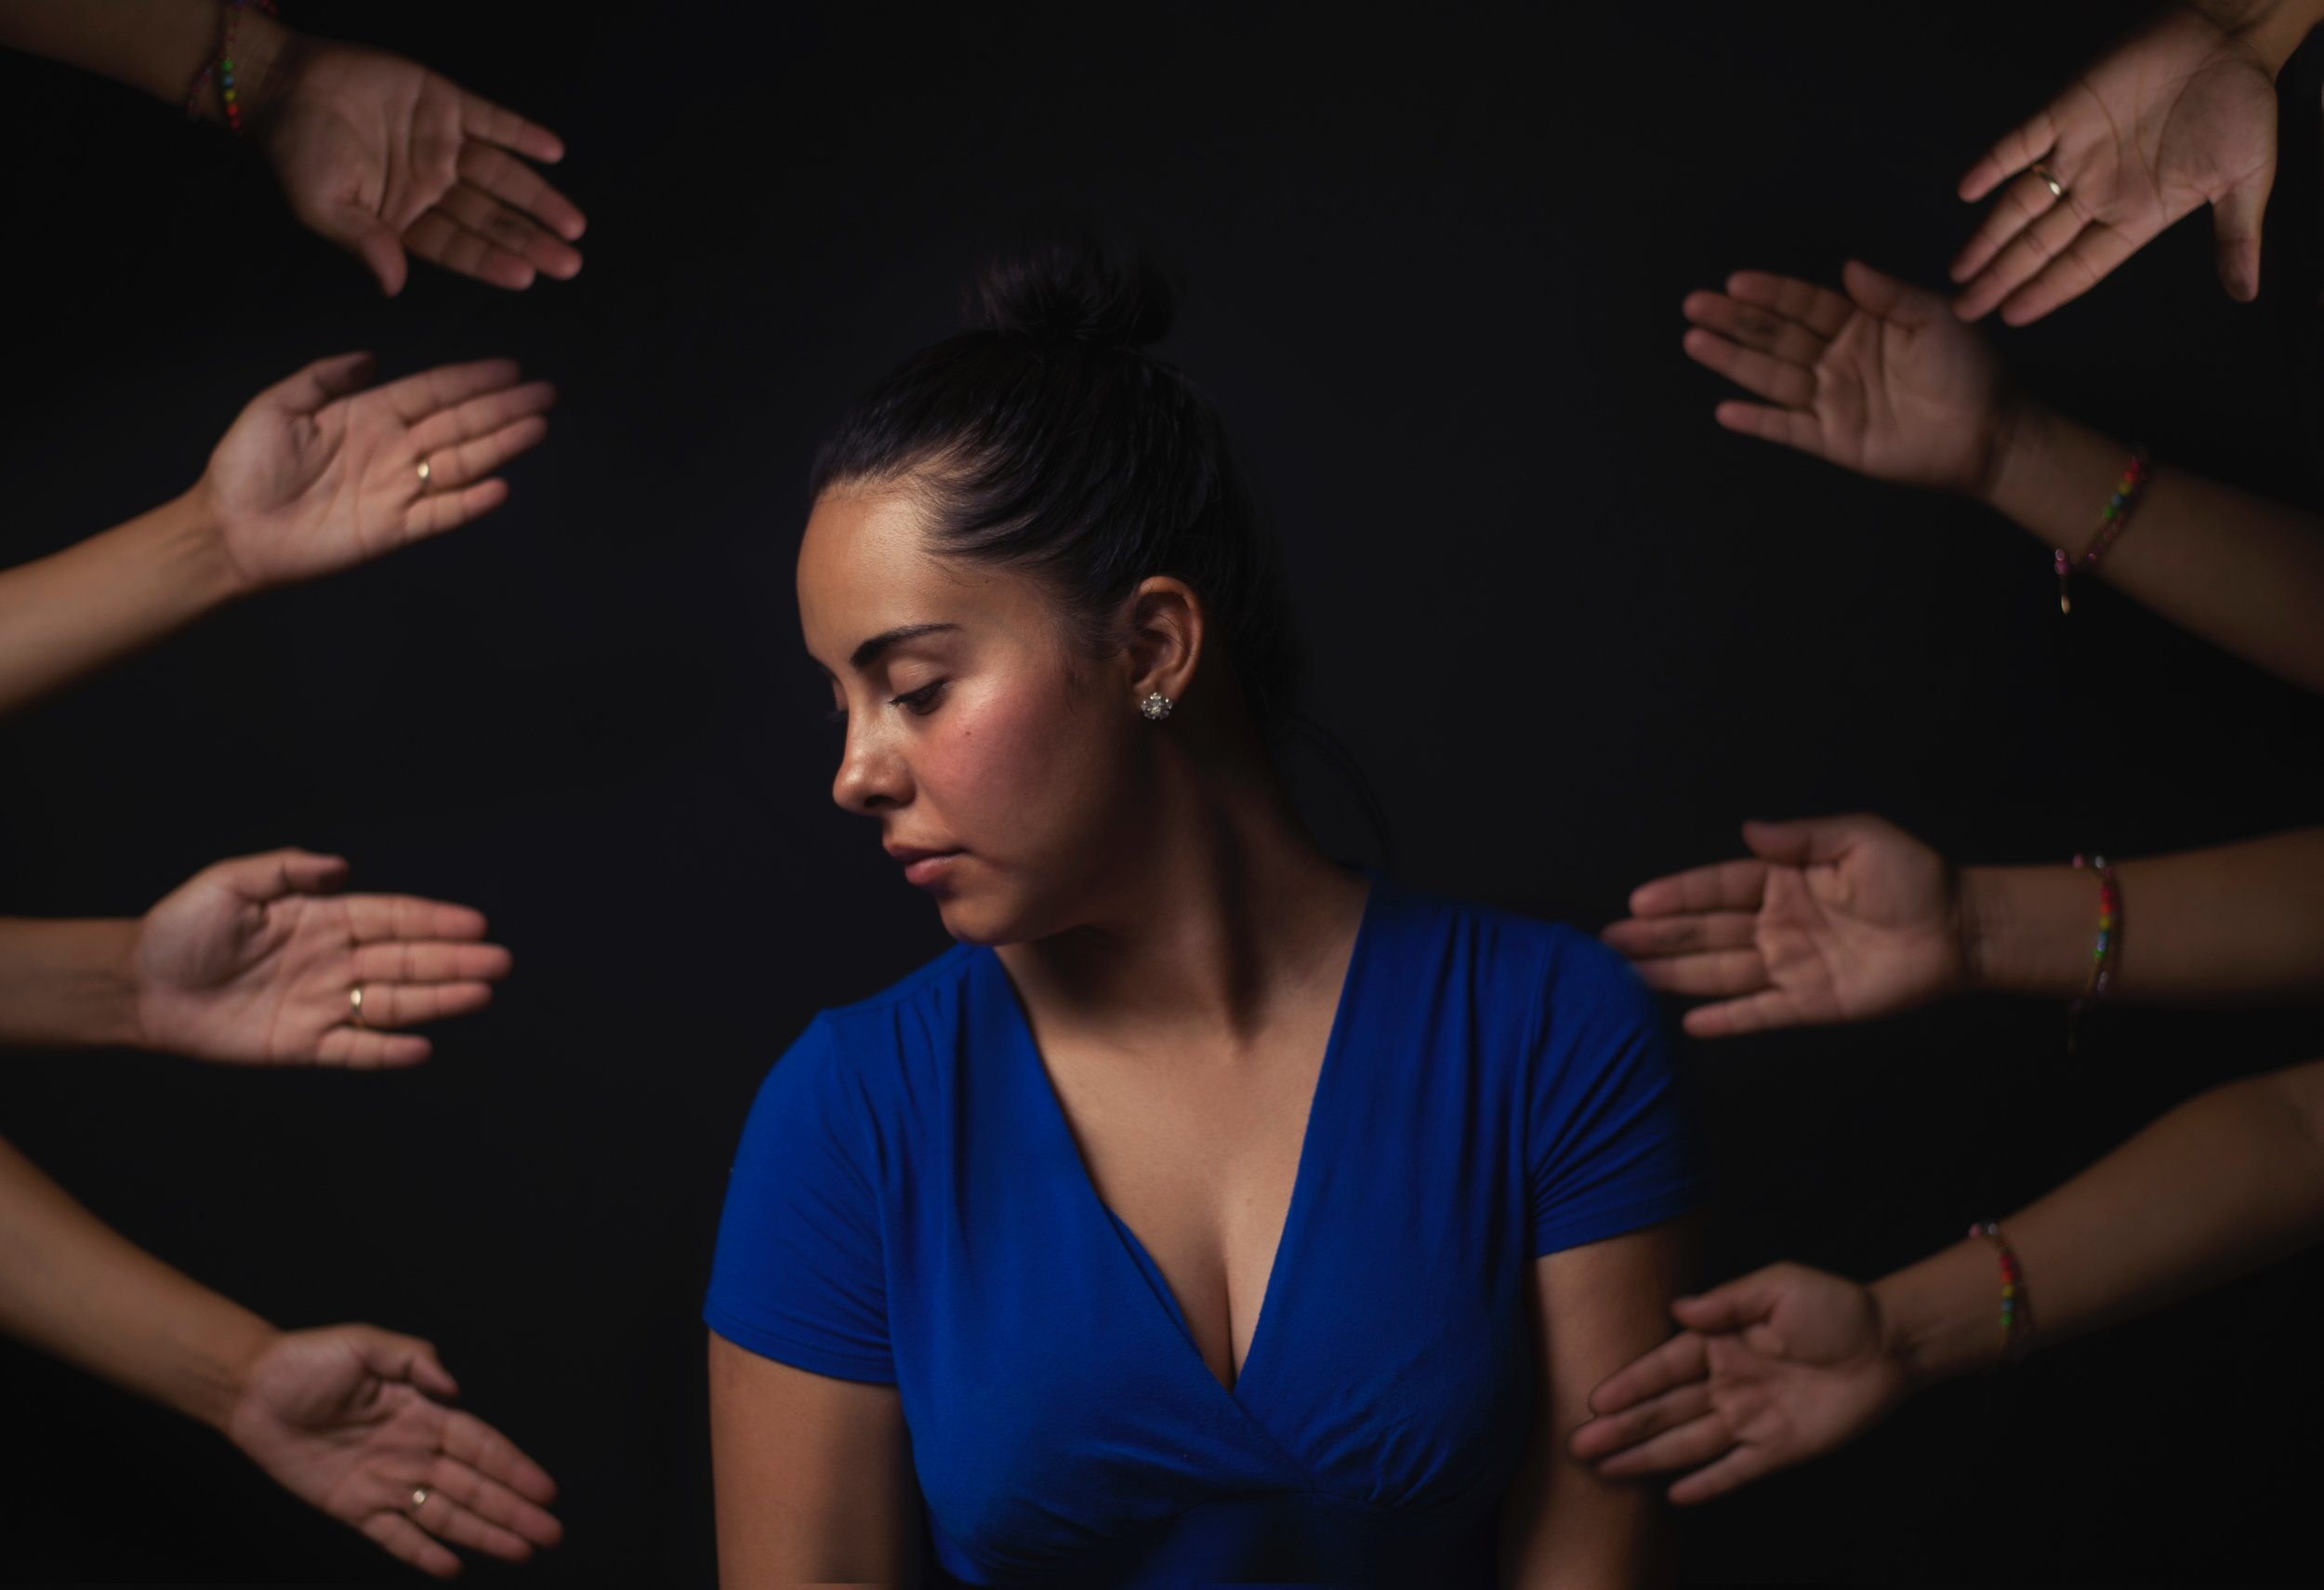 A woman sits in a dark space, with helping hands reaching toward her from all directions.